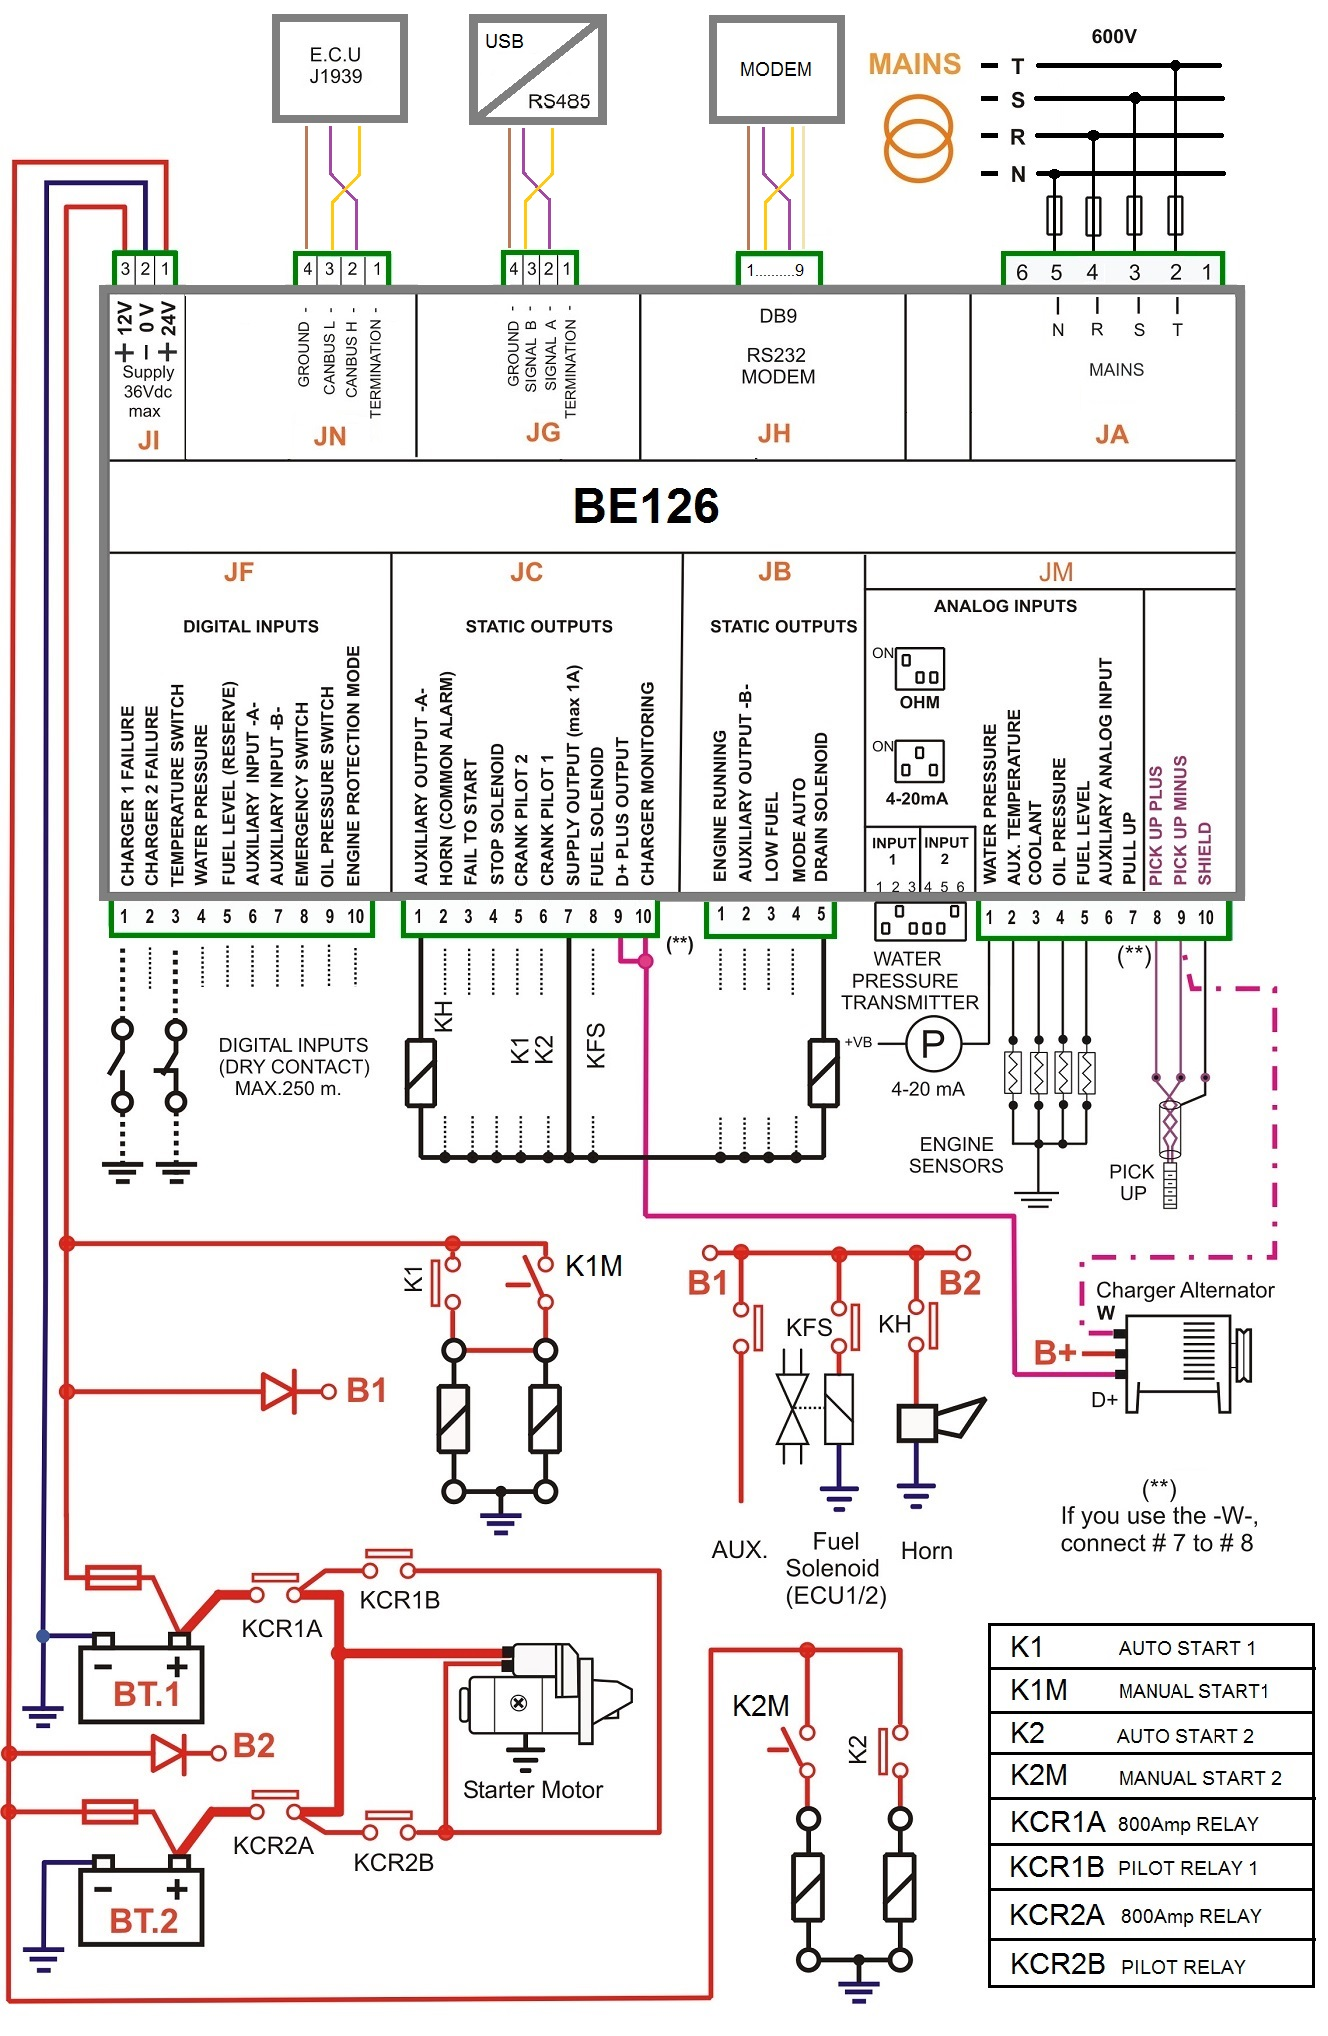 hight resolution of pump control schematic wiring diagram sort pump control wiring diagram search wiring diagram pump control schematic